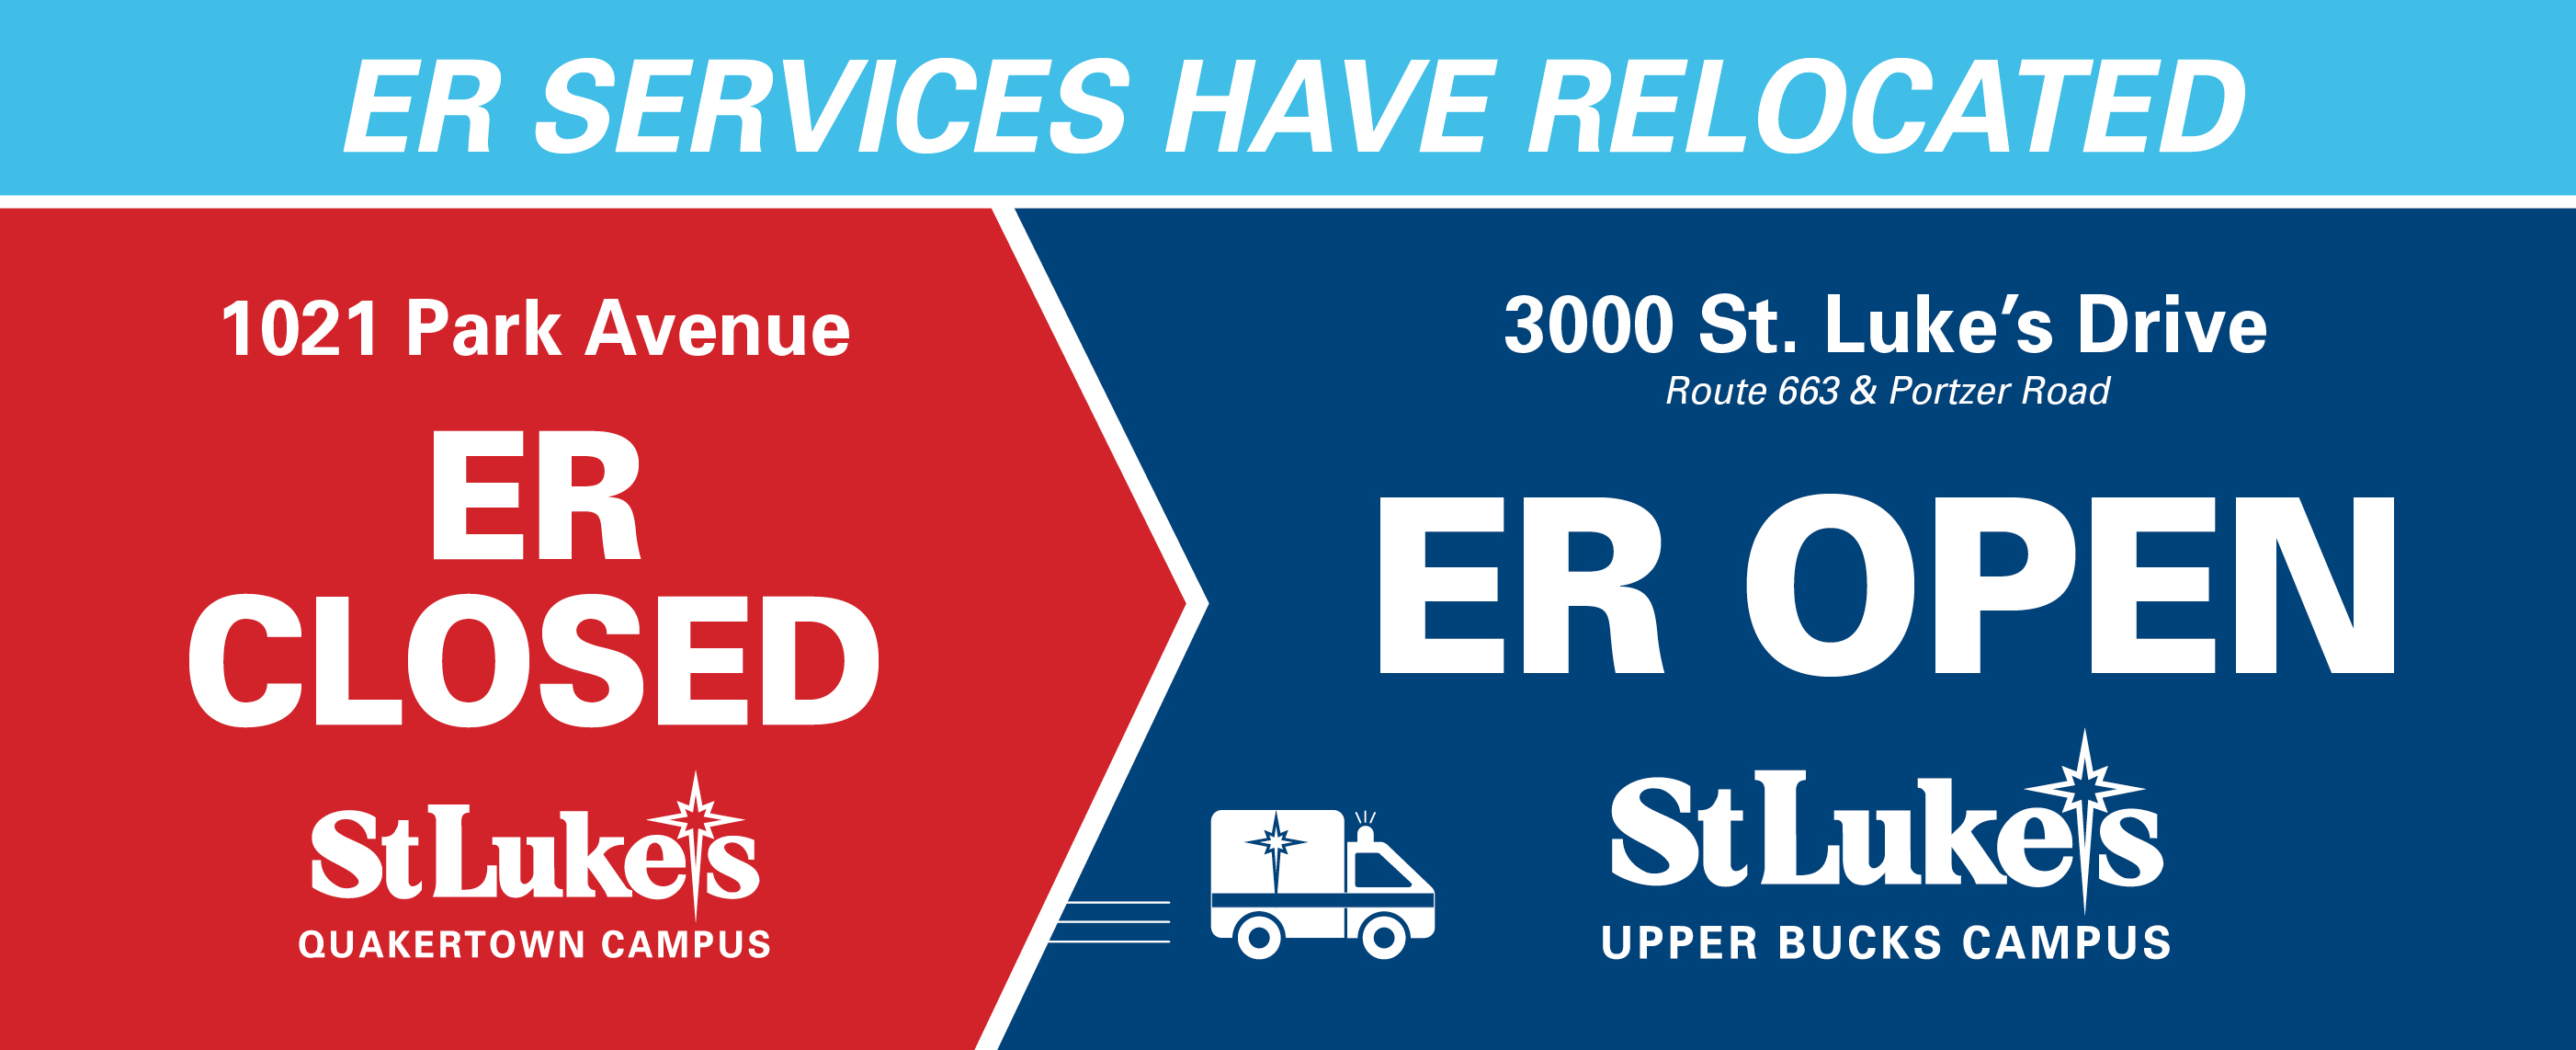 Emergency Room Services Have Relocated